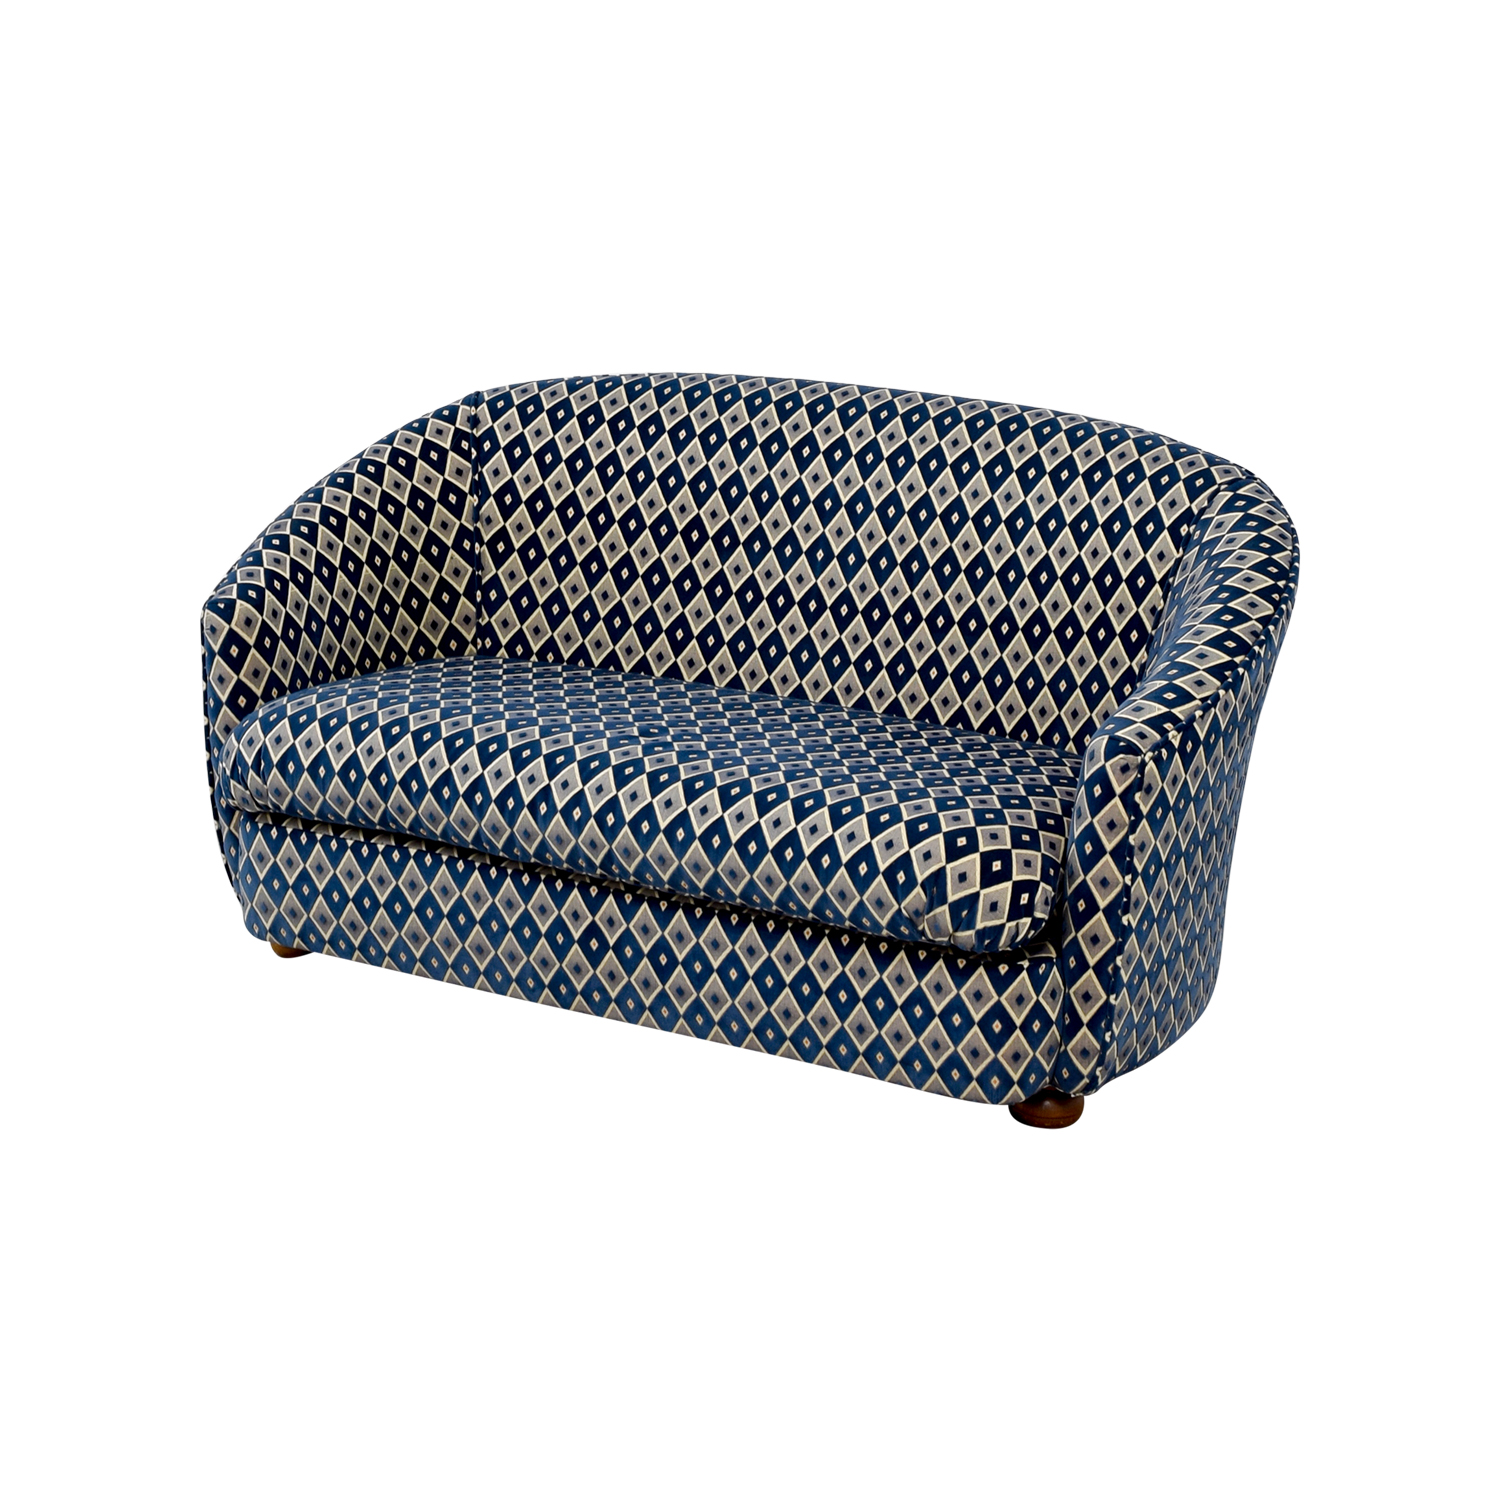 Remarkable 80 Off French Heritage Blue And Grey Harlequin Loveseat Sofas Cjindustries Chair Design For Home Cjindustriesco